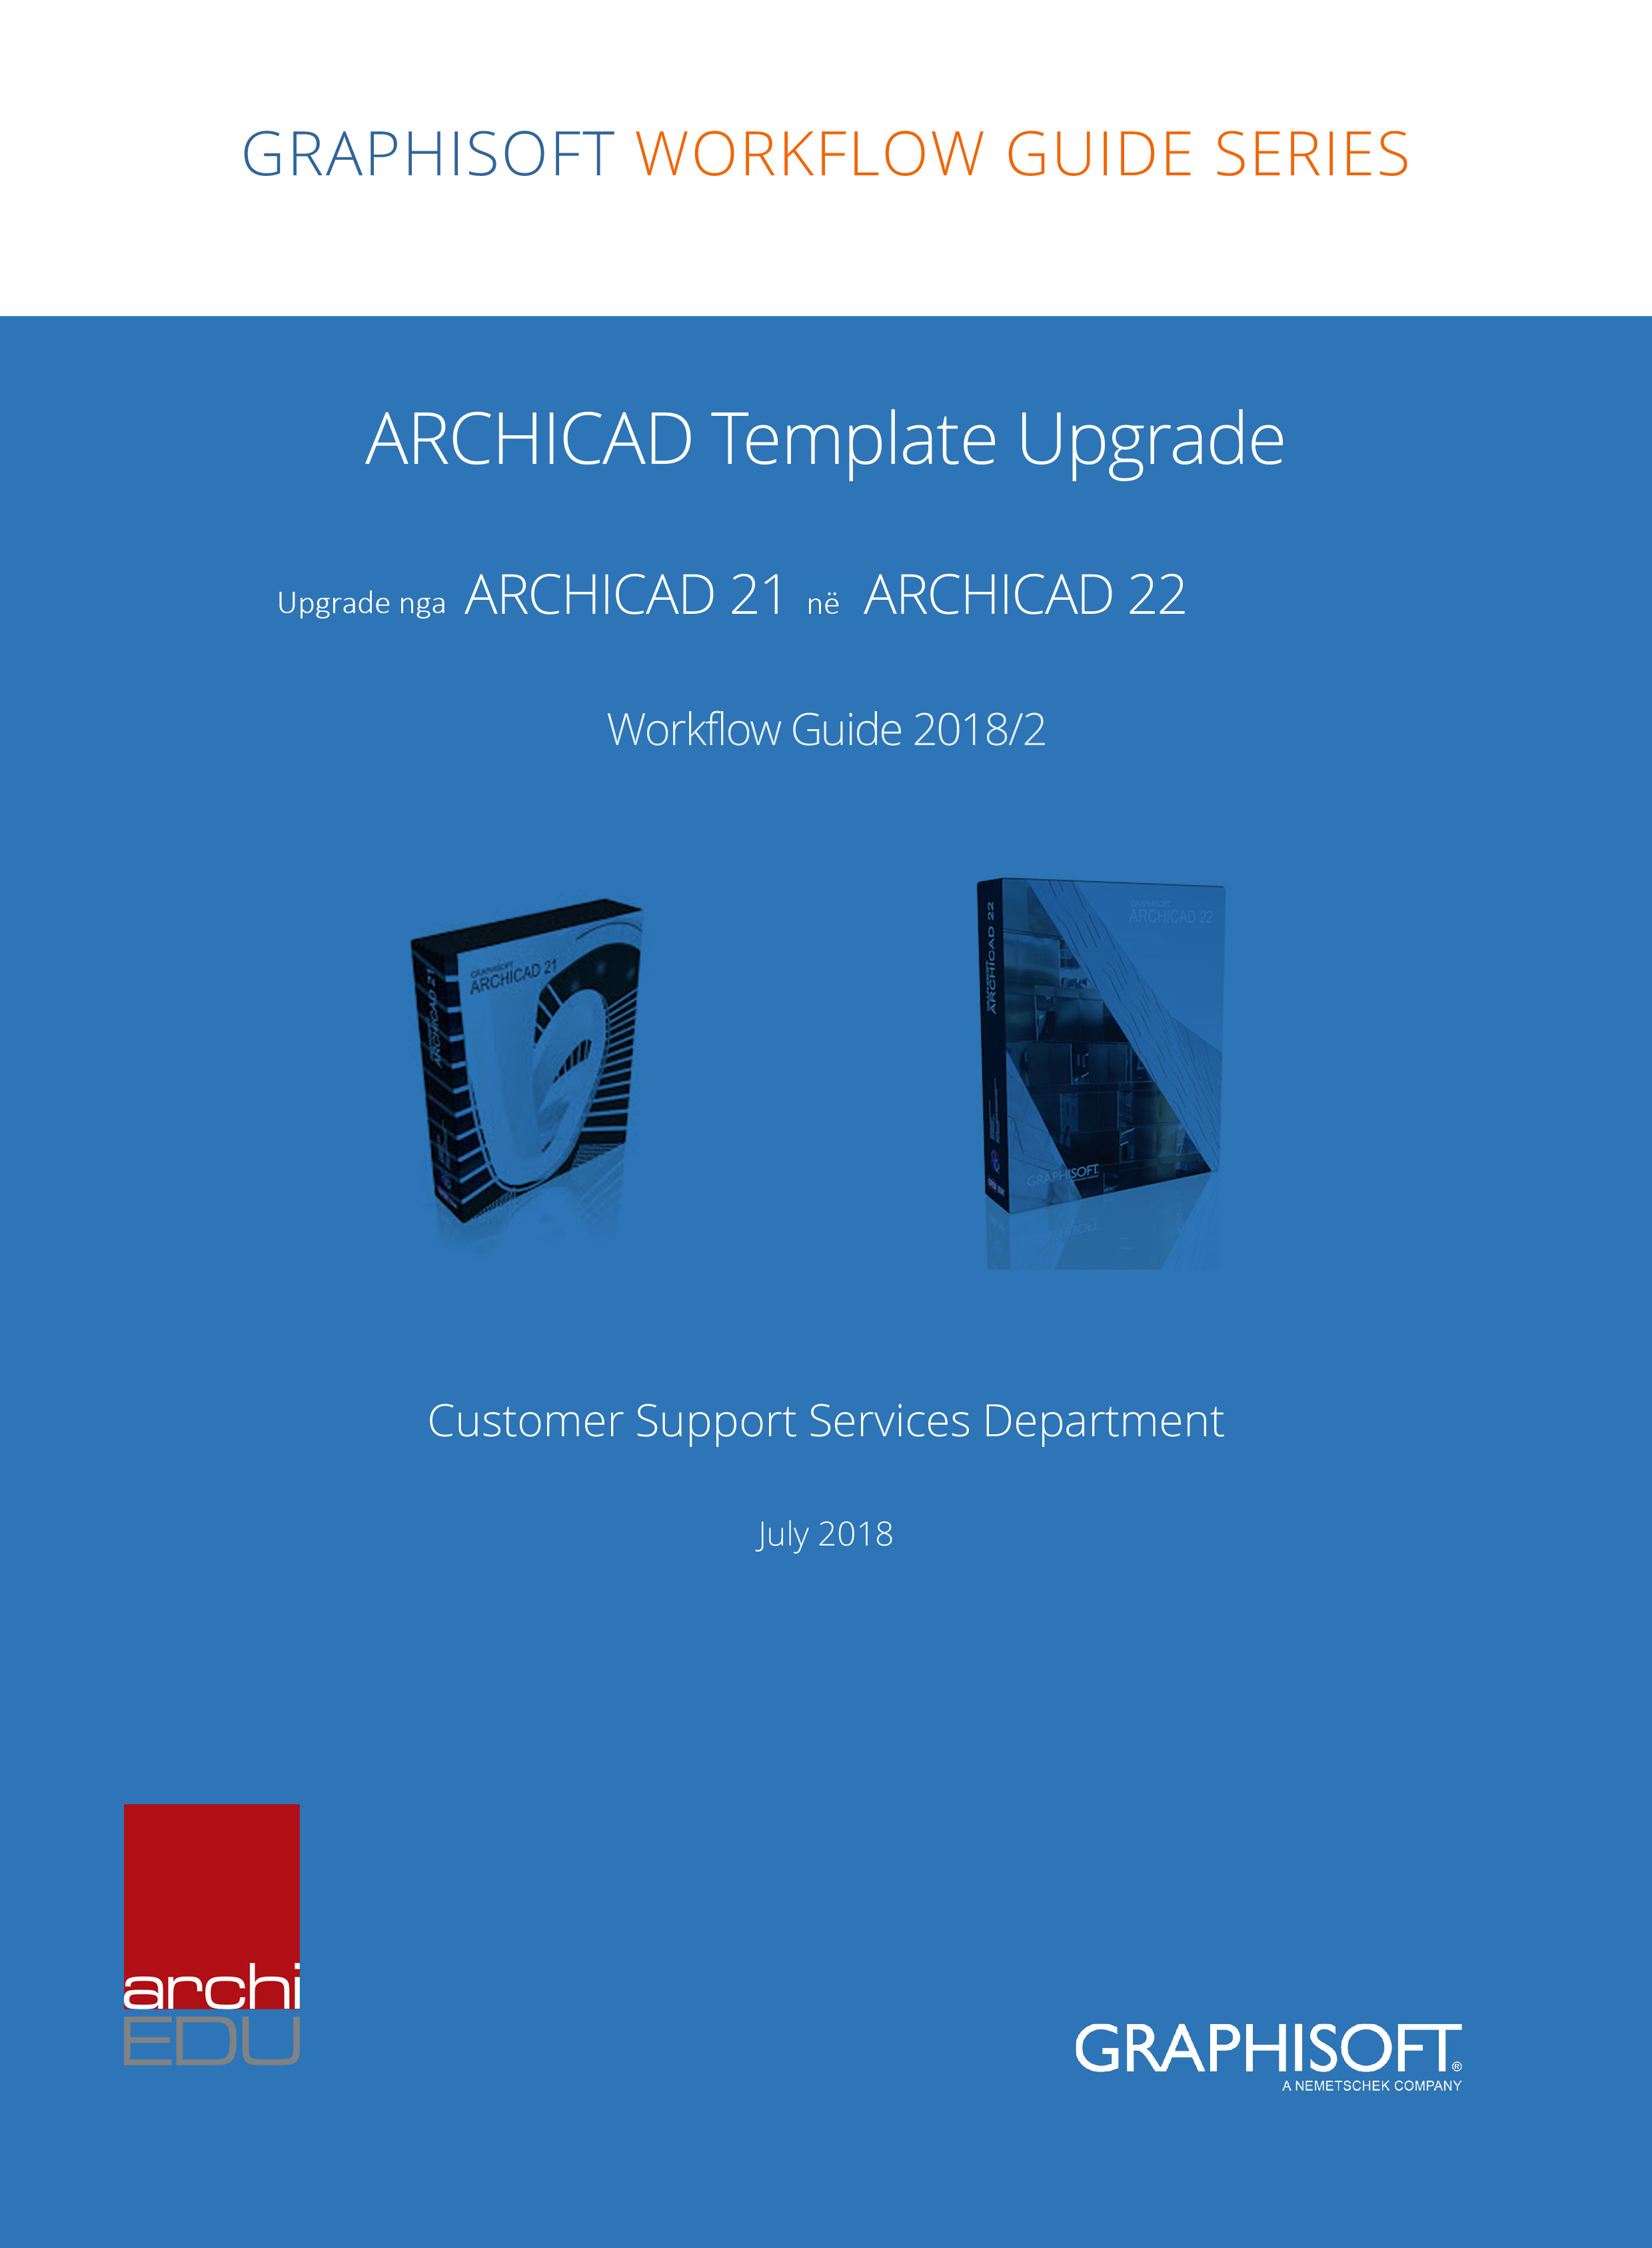 GWG_ARCHICAD-Template-Upgrade.jpg